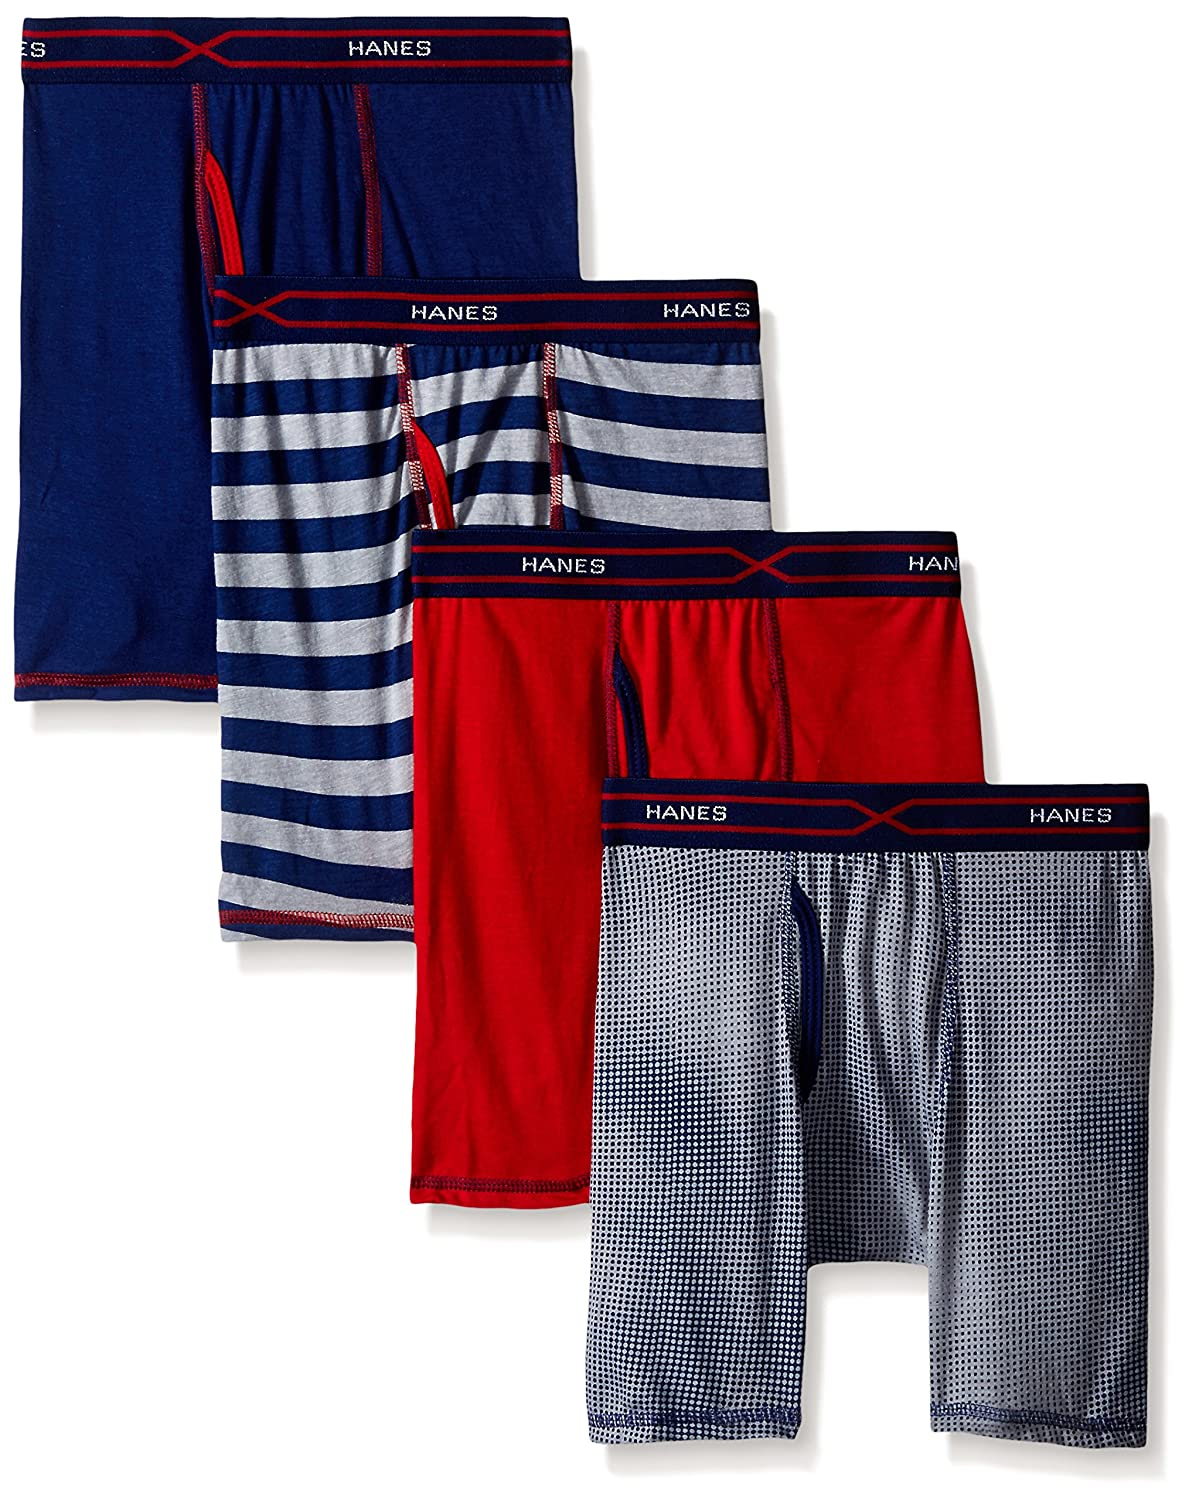 Hanes boys Toddler Boys 4-pack X-temp Long Legged Dyed Boxer Brief Hanes Girls 7-16 Underwear BX6LP4